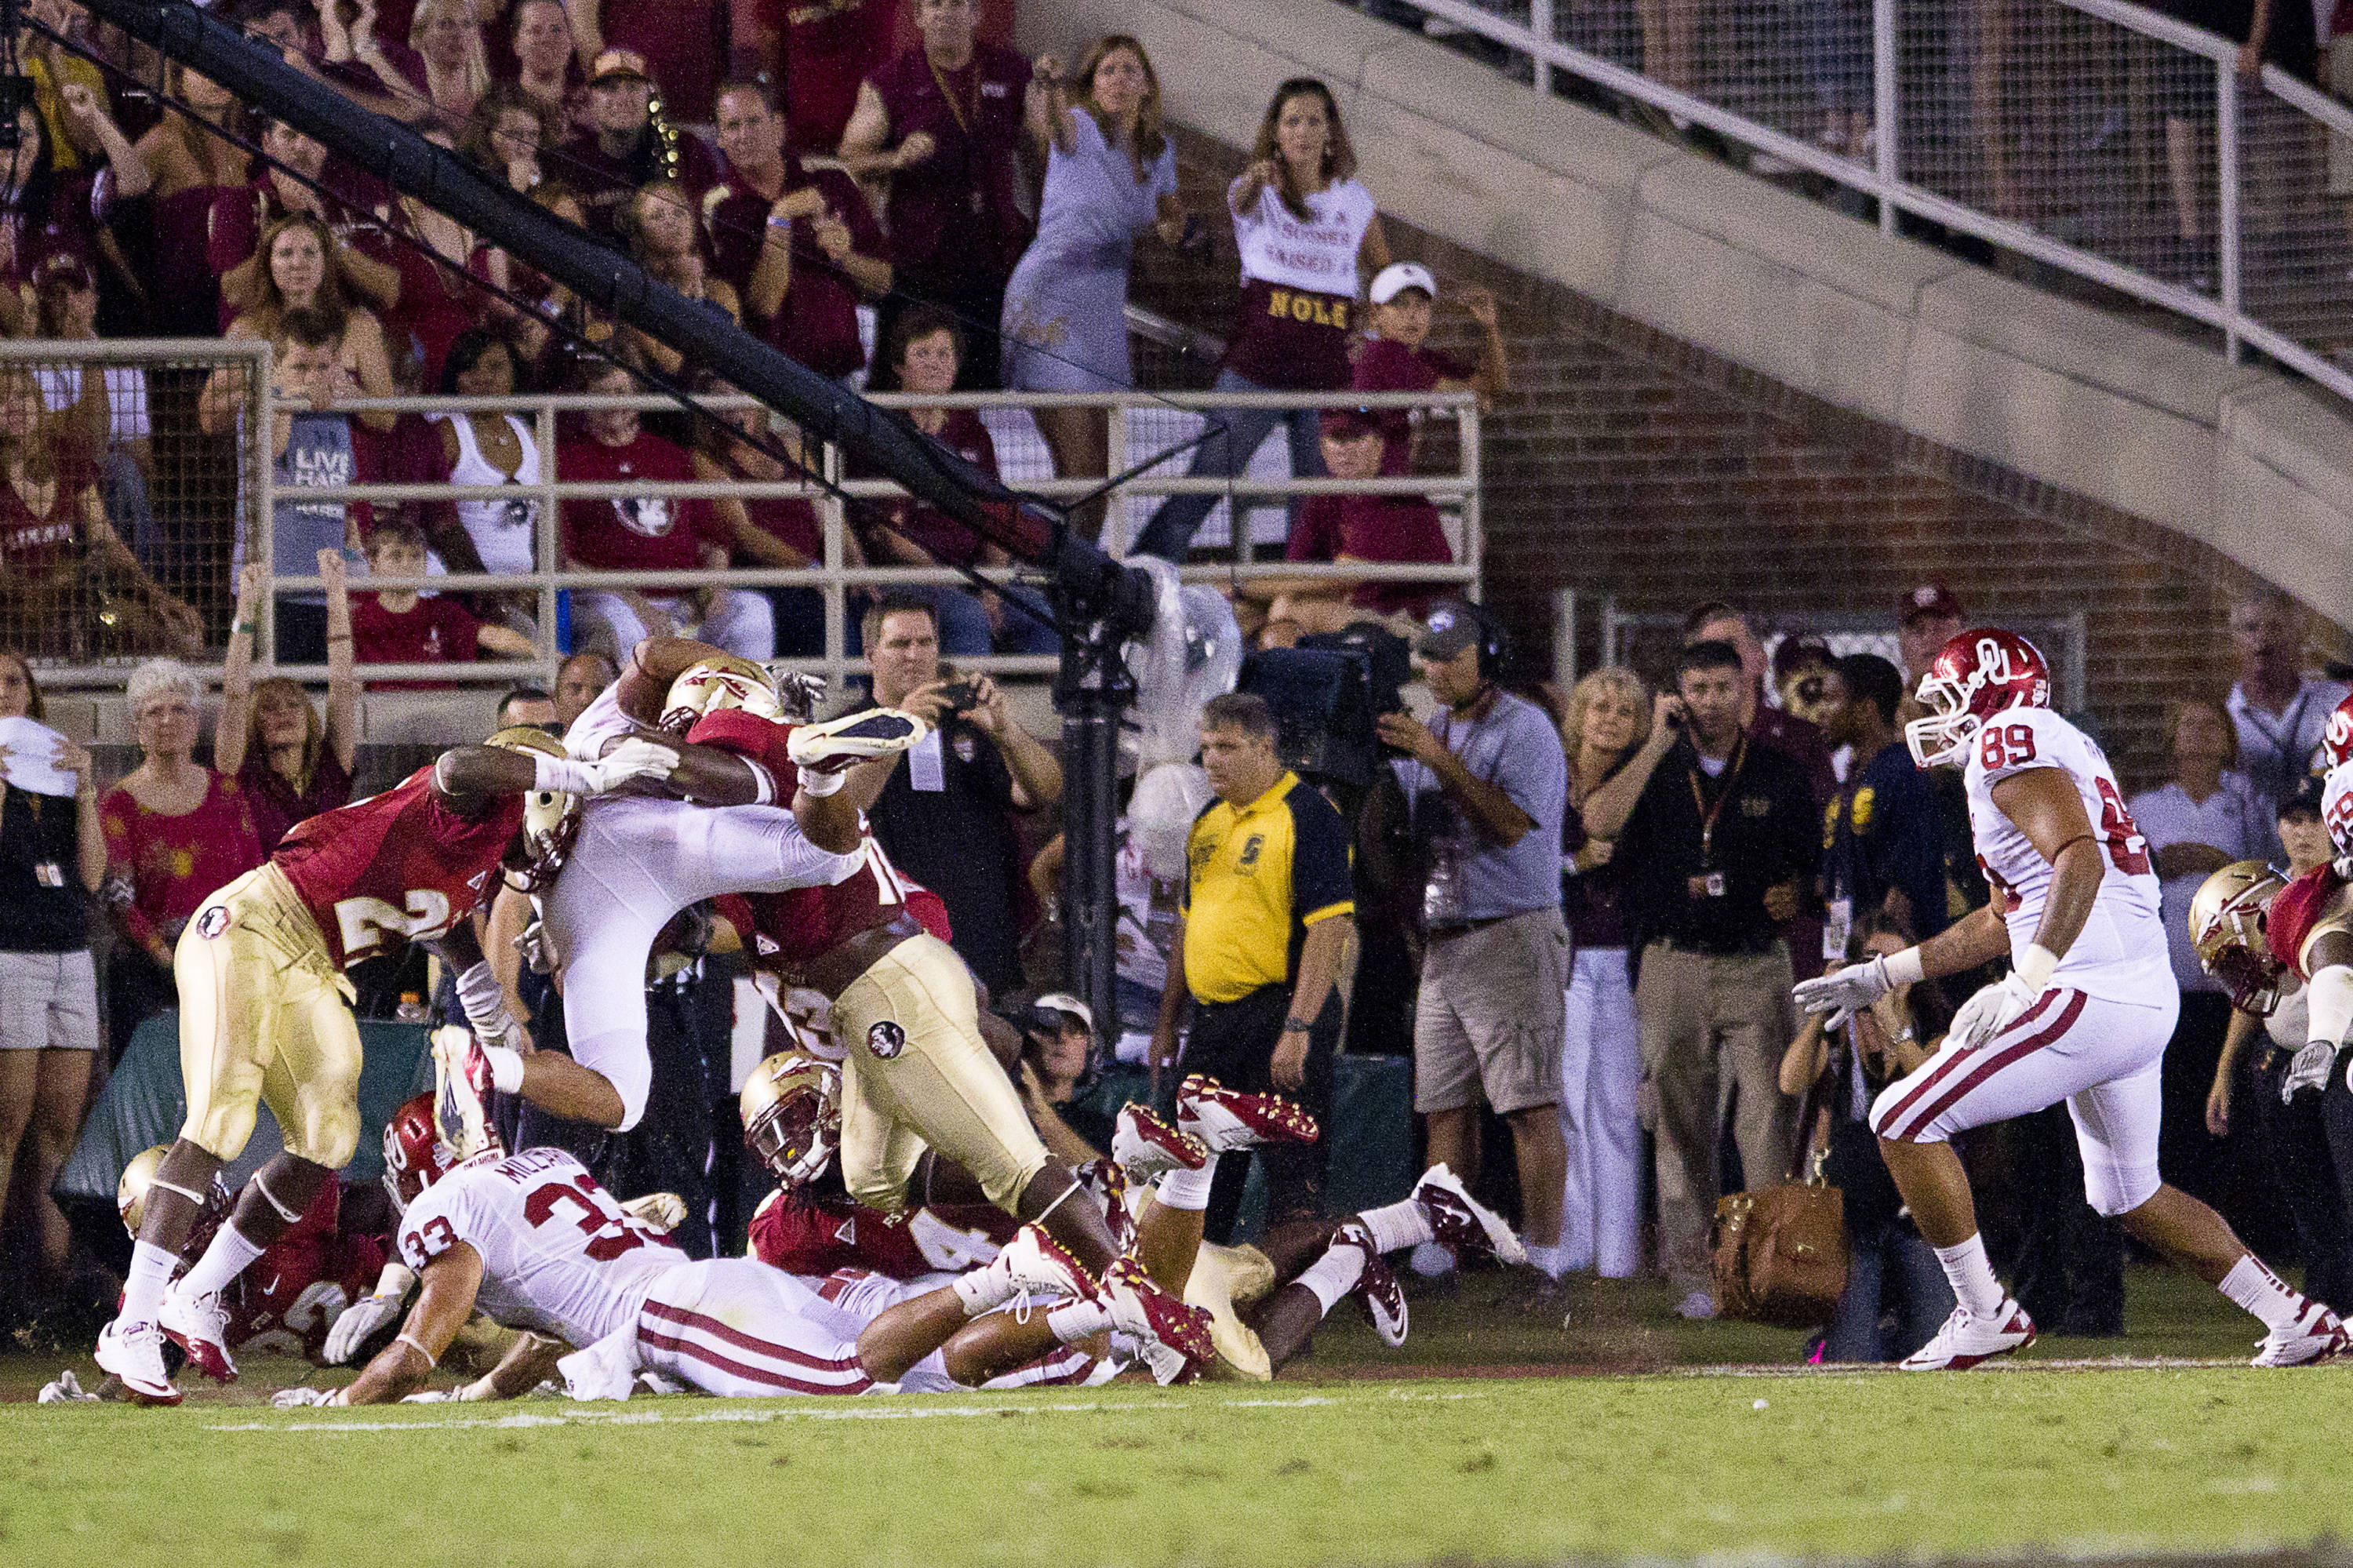 FSU defenders stop an Oklahoma ball carrier at the goal line during the game against Oklahoma on September 17, 2011.